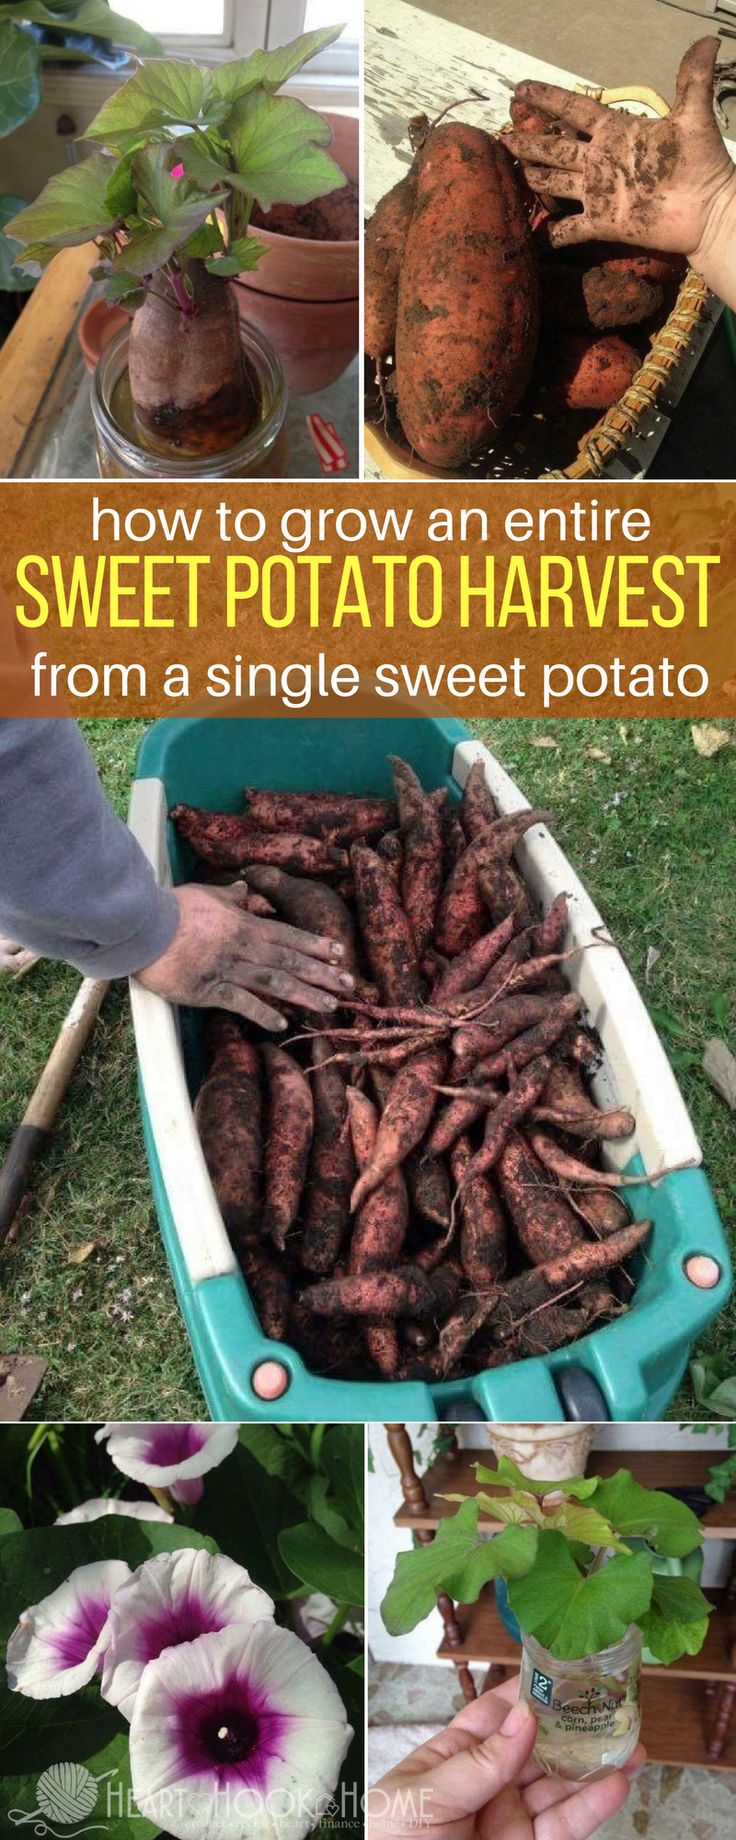 One Candy Potato Produced all of This…